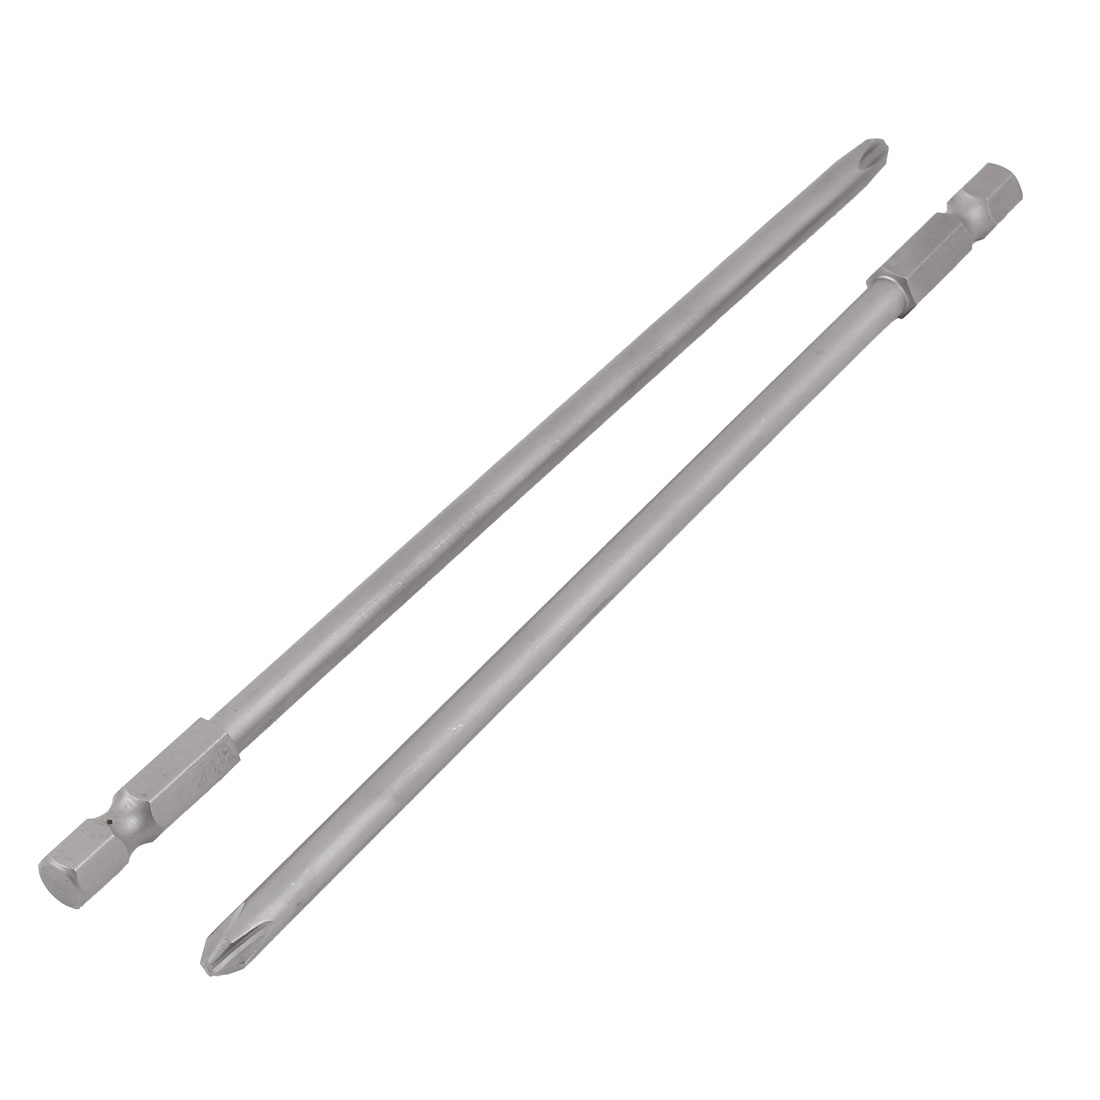 "2pcs 1/4"" Hex Shank 5mm PH1 Magnetic Phillips Crosshead Screwdriver Bits 150mm"